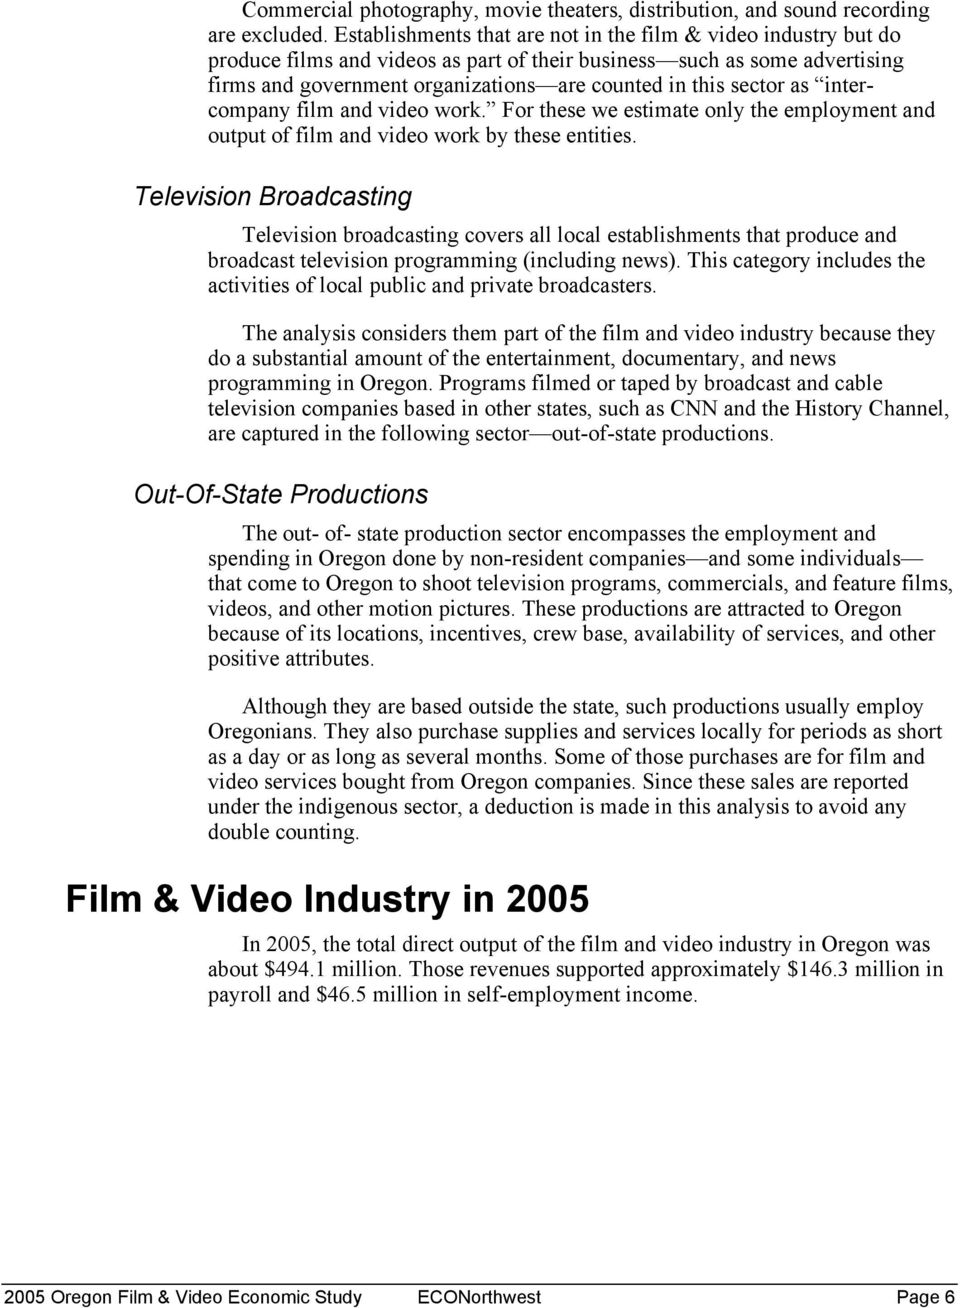 sector as intercompany film and video work. For these we estimate only the employment and output of film and video work by these entities.